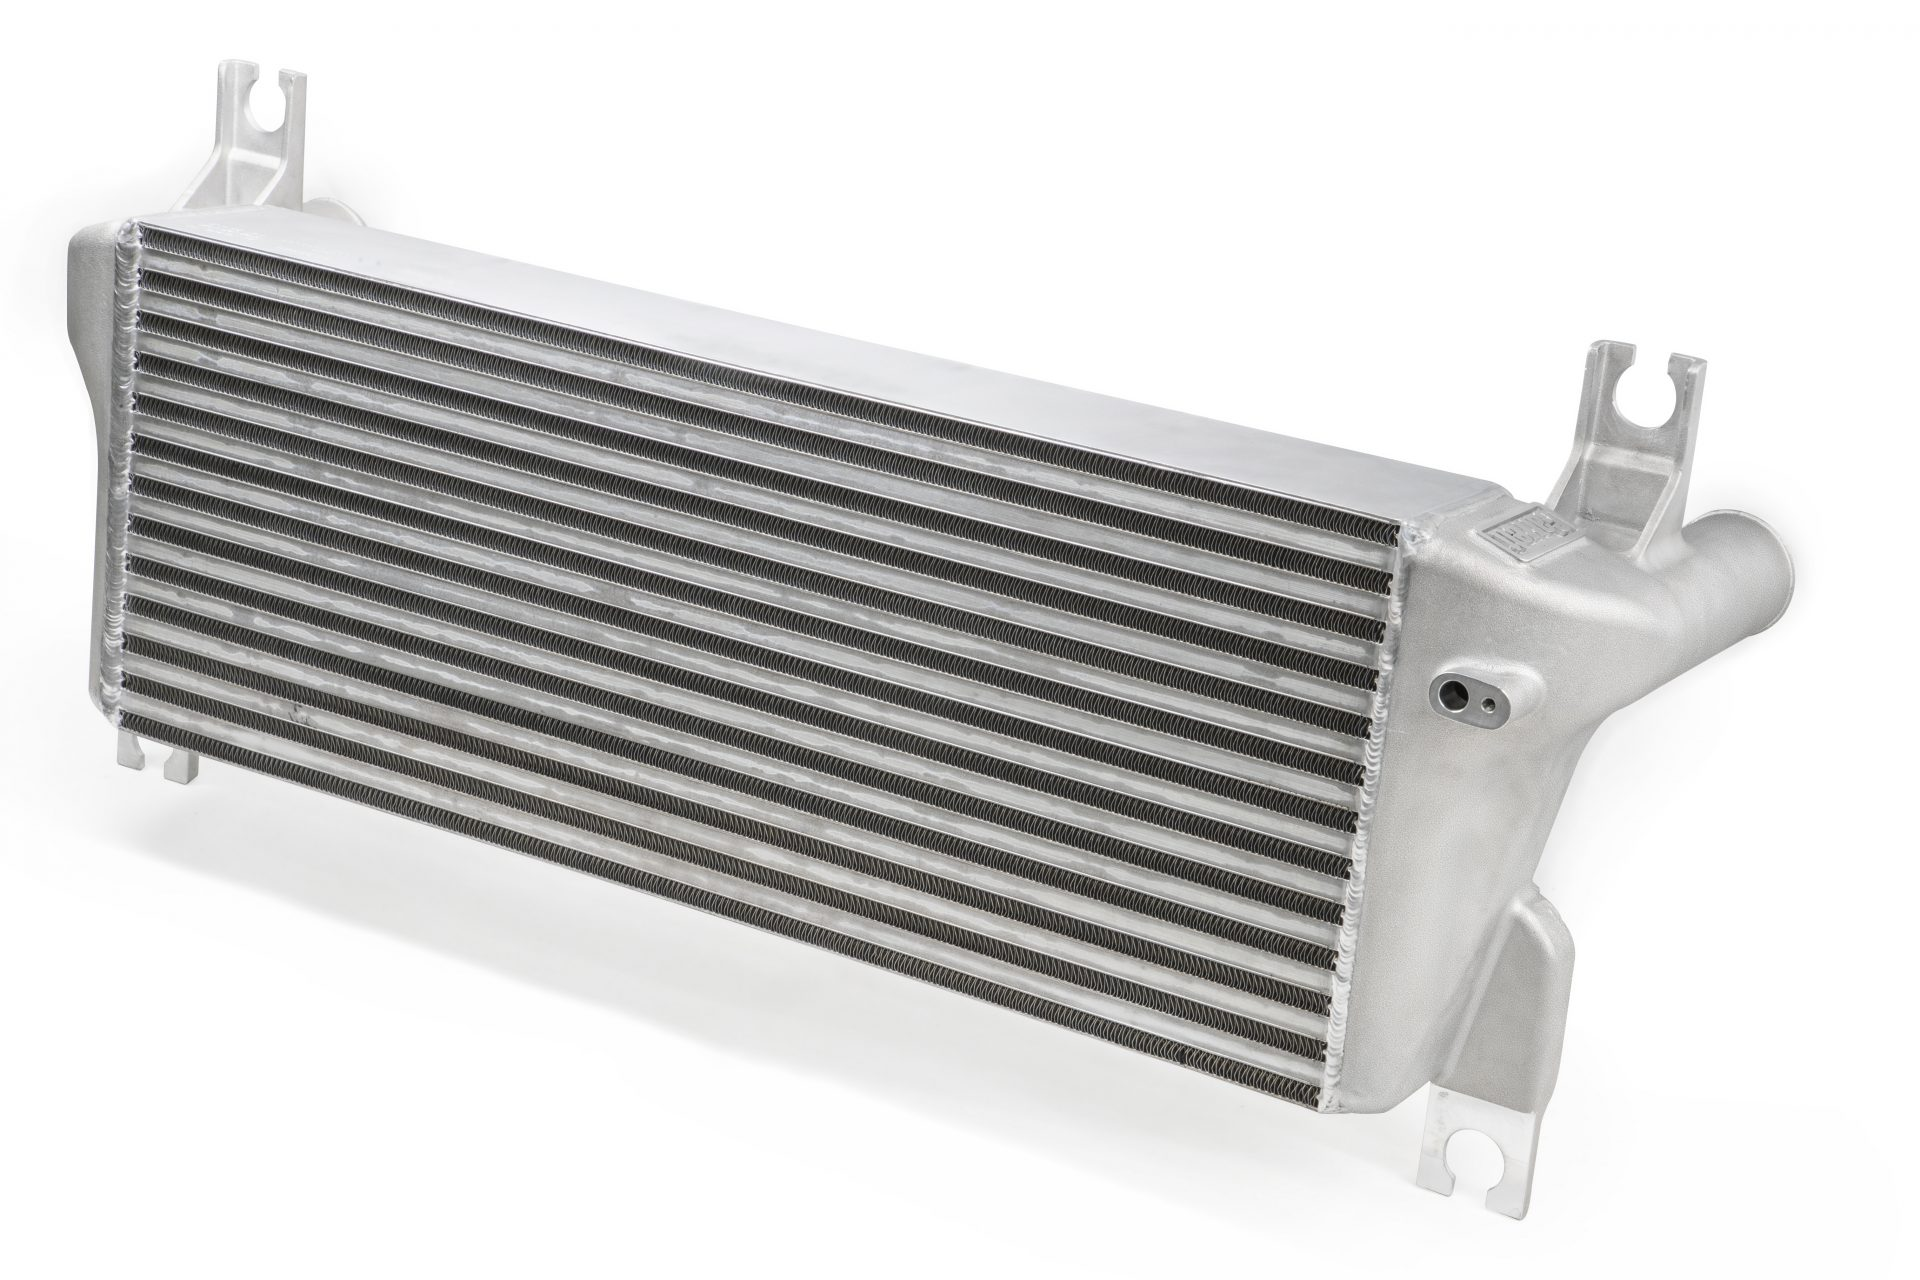 Intercooler Suits Ford Ranger PXI, PXII, Mazda BT-50 3.2L, 2.2L - Click to enlarge